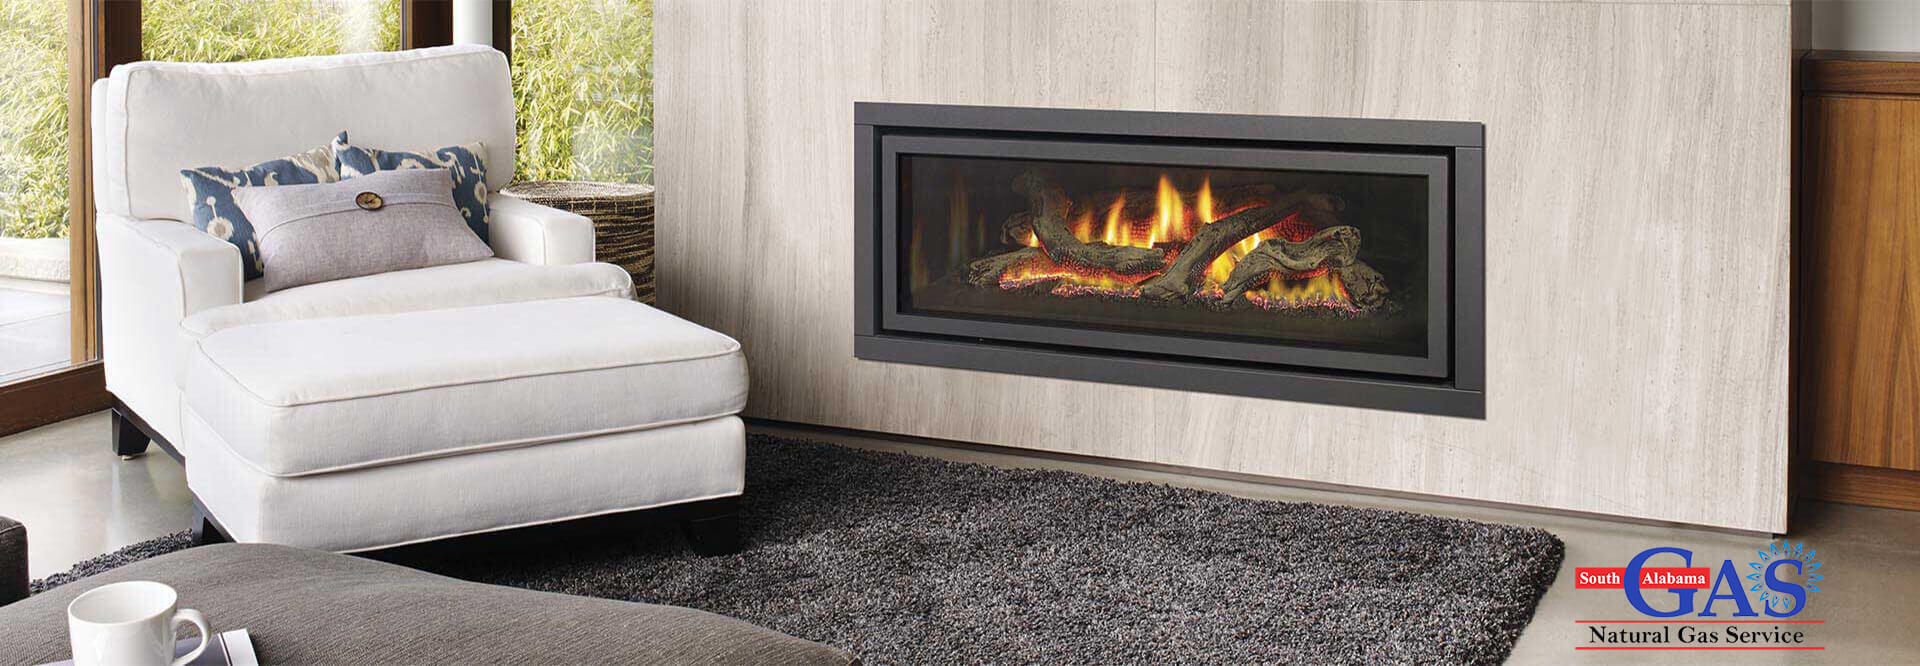 Comfy Natural Gas Fire Place